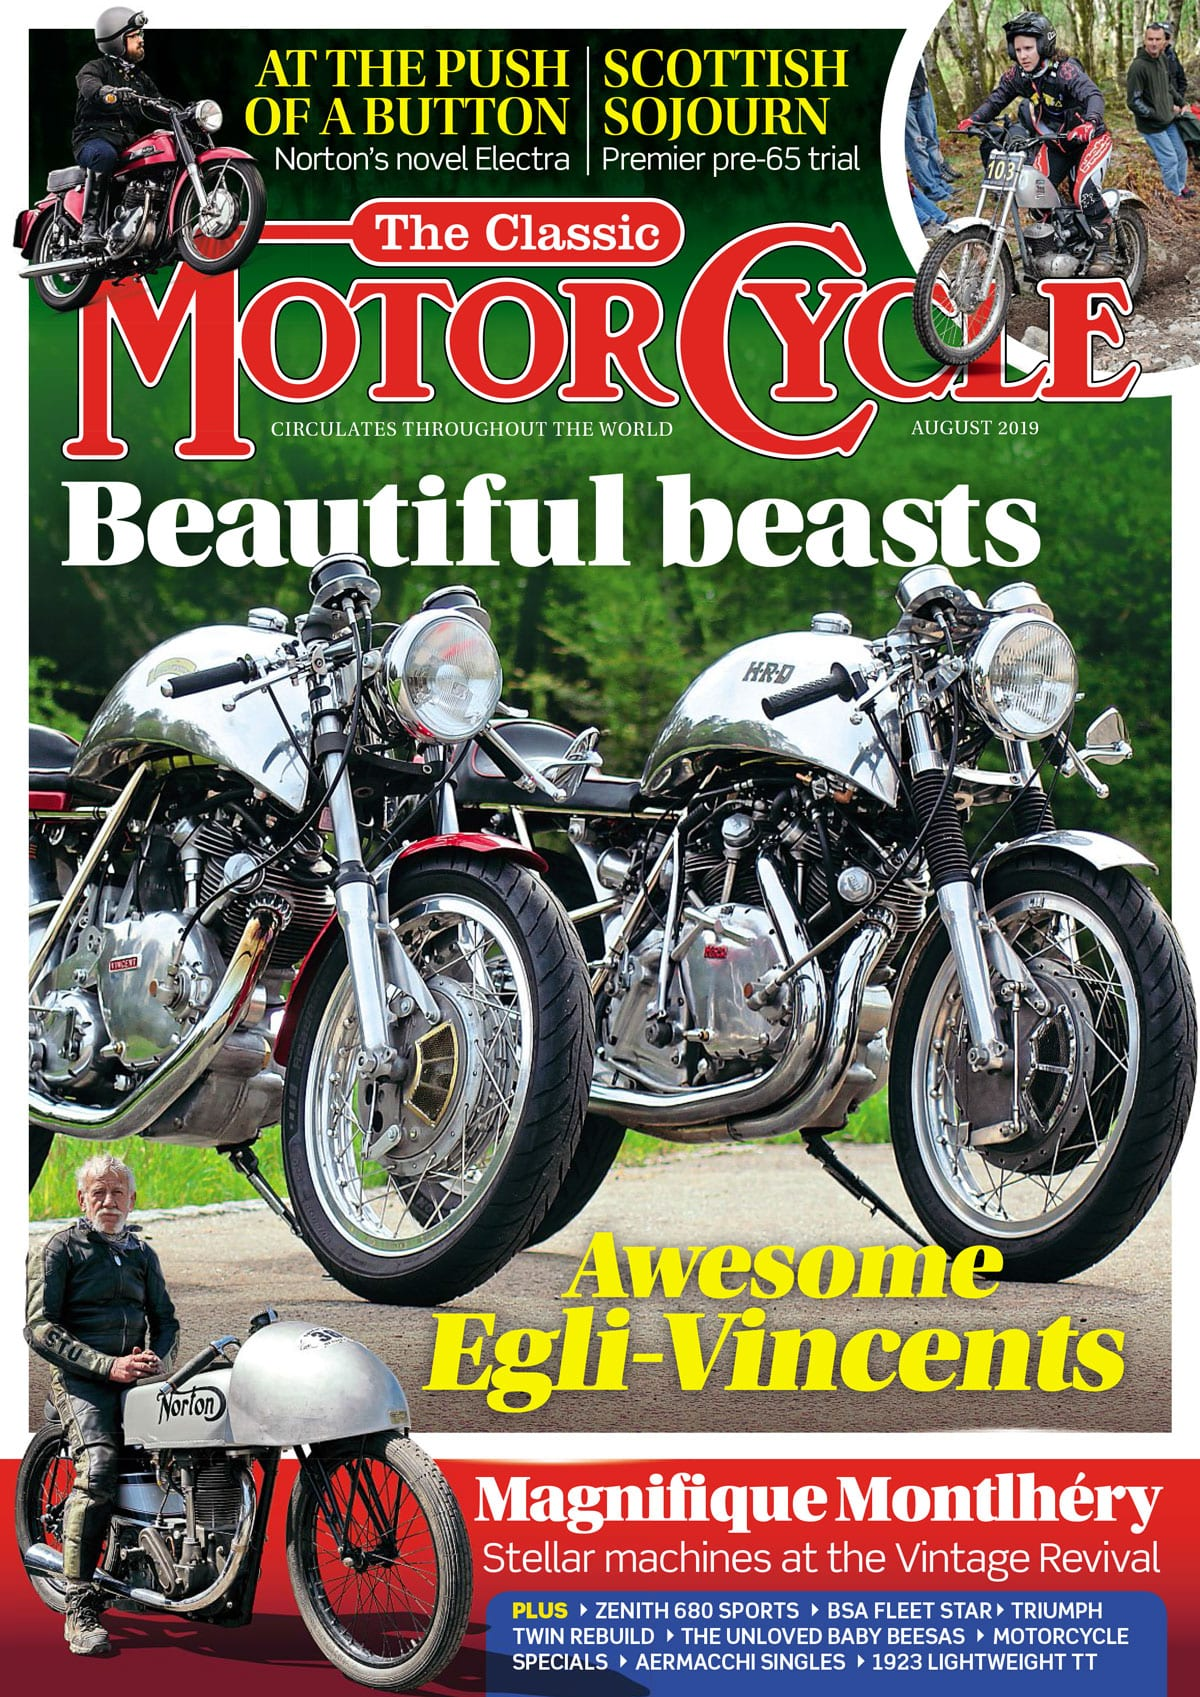 The Classic Motorcycle August cover